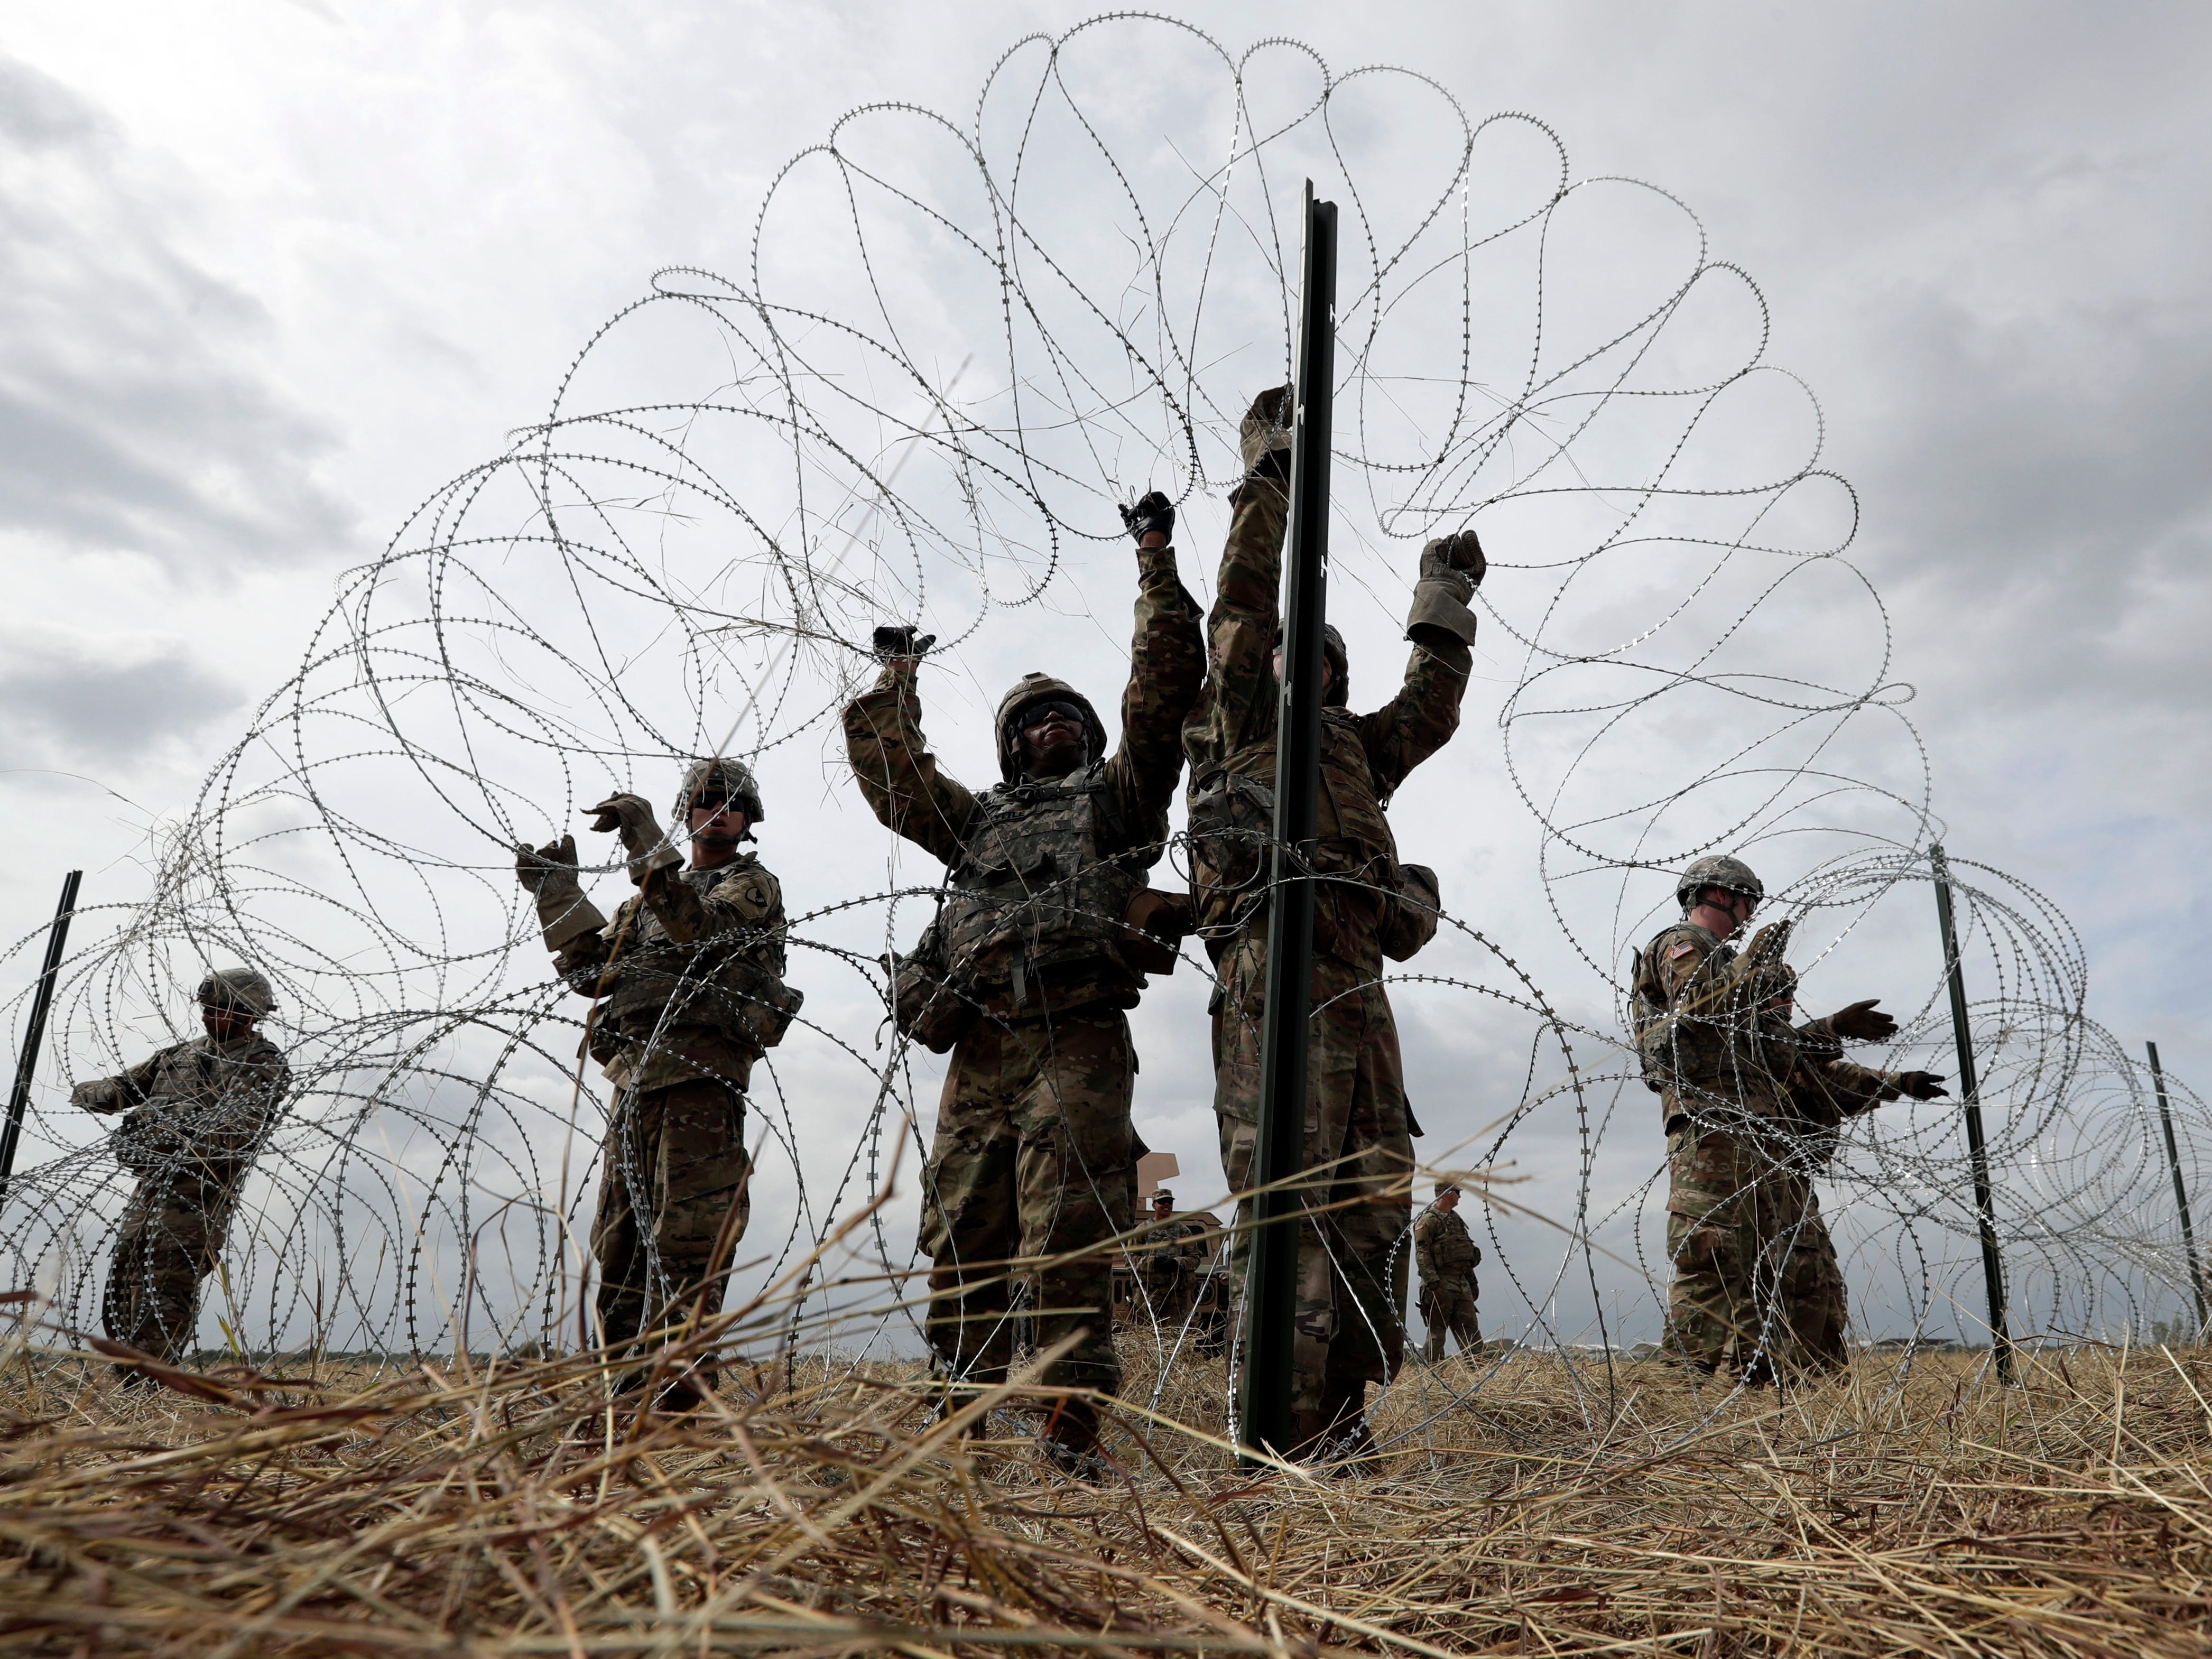 Members of a U.S Army engineering brigade place Concertina wire around an encampment for troops, Department of Defense and U.S. Customs and Border Protection near the U.S.-Mexico International bridge, Sunday, Nov. 4, 2018, in Donna, Texas.